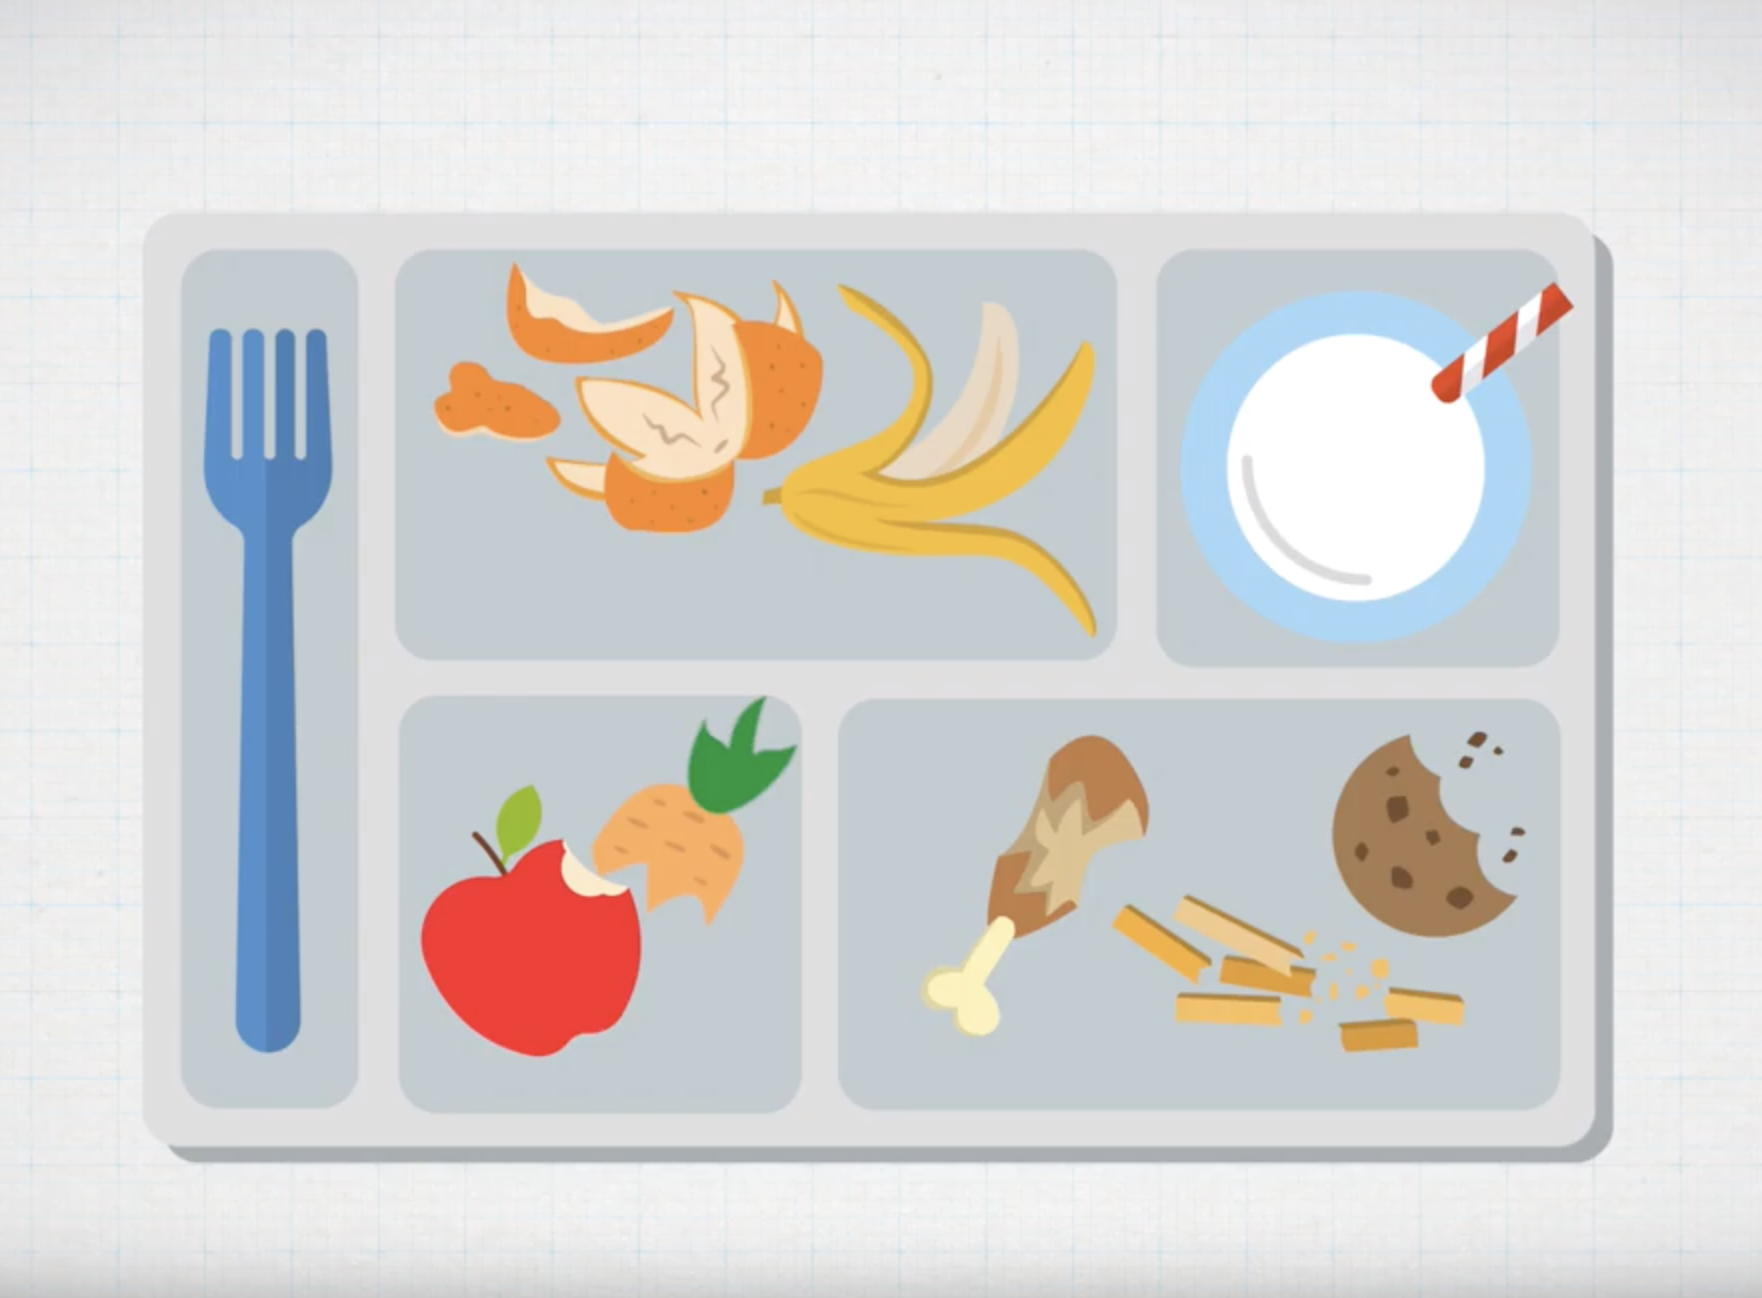 Solve It: Food Waste - To research the type and amount of food currently being thrown away at your school and design a solution that helps to reduce, re-use, or recycle the waste to minimize how much is going to a landfill.